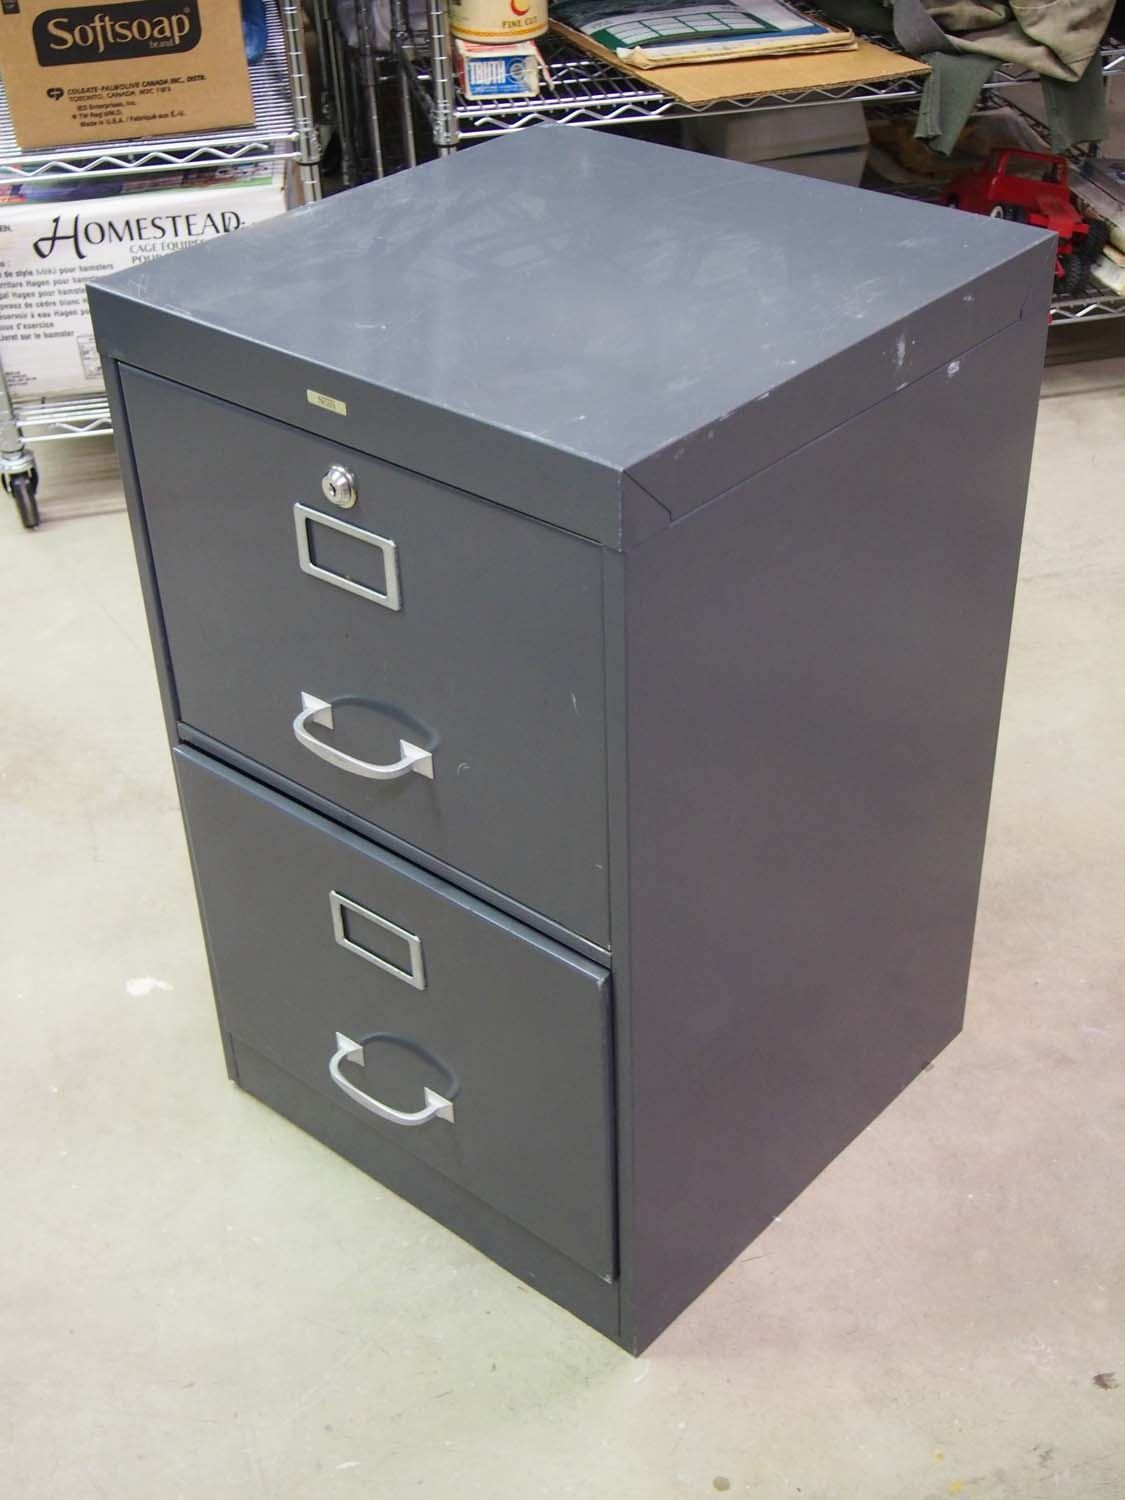 ... Image 2  Sears Two Drawer Metal Filing Cabinet 18 x18 x28  ... & Sears Two Drawer Metal Filing Cabinet 18